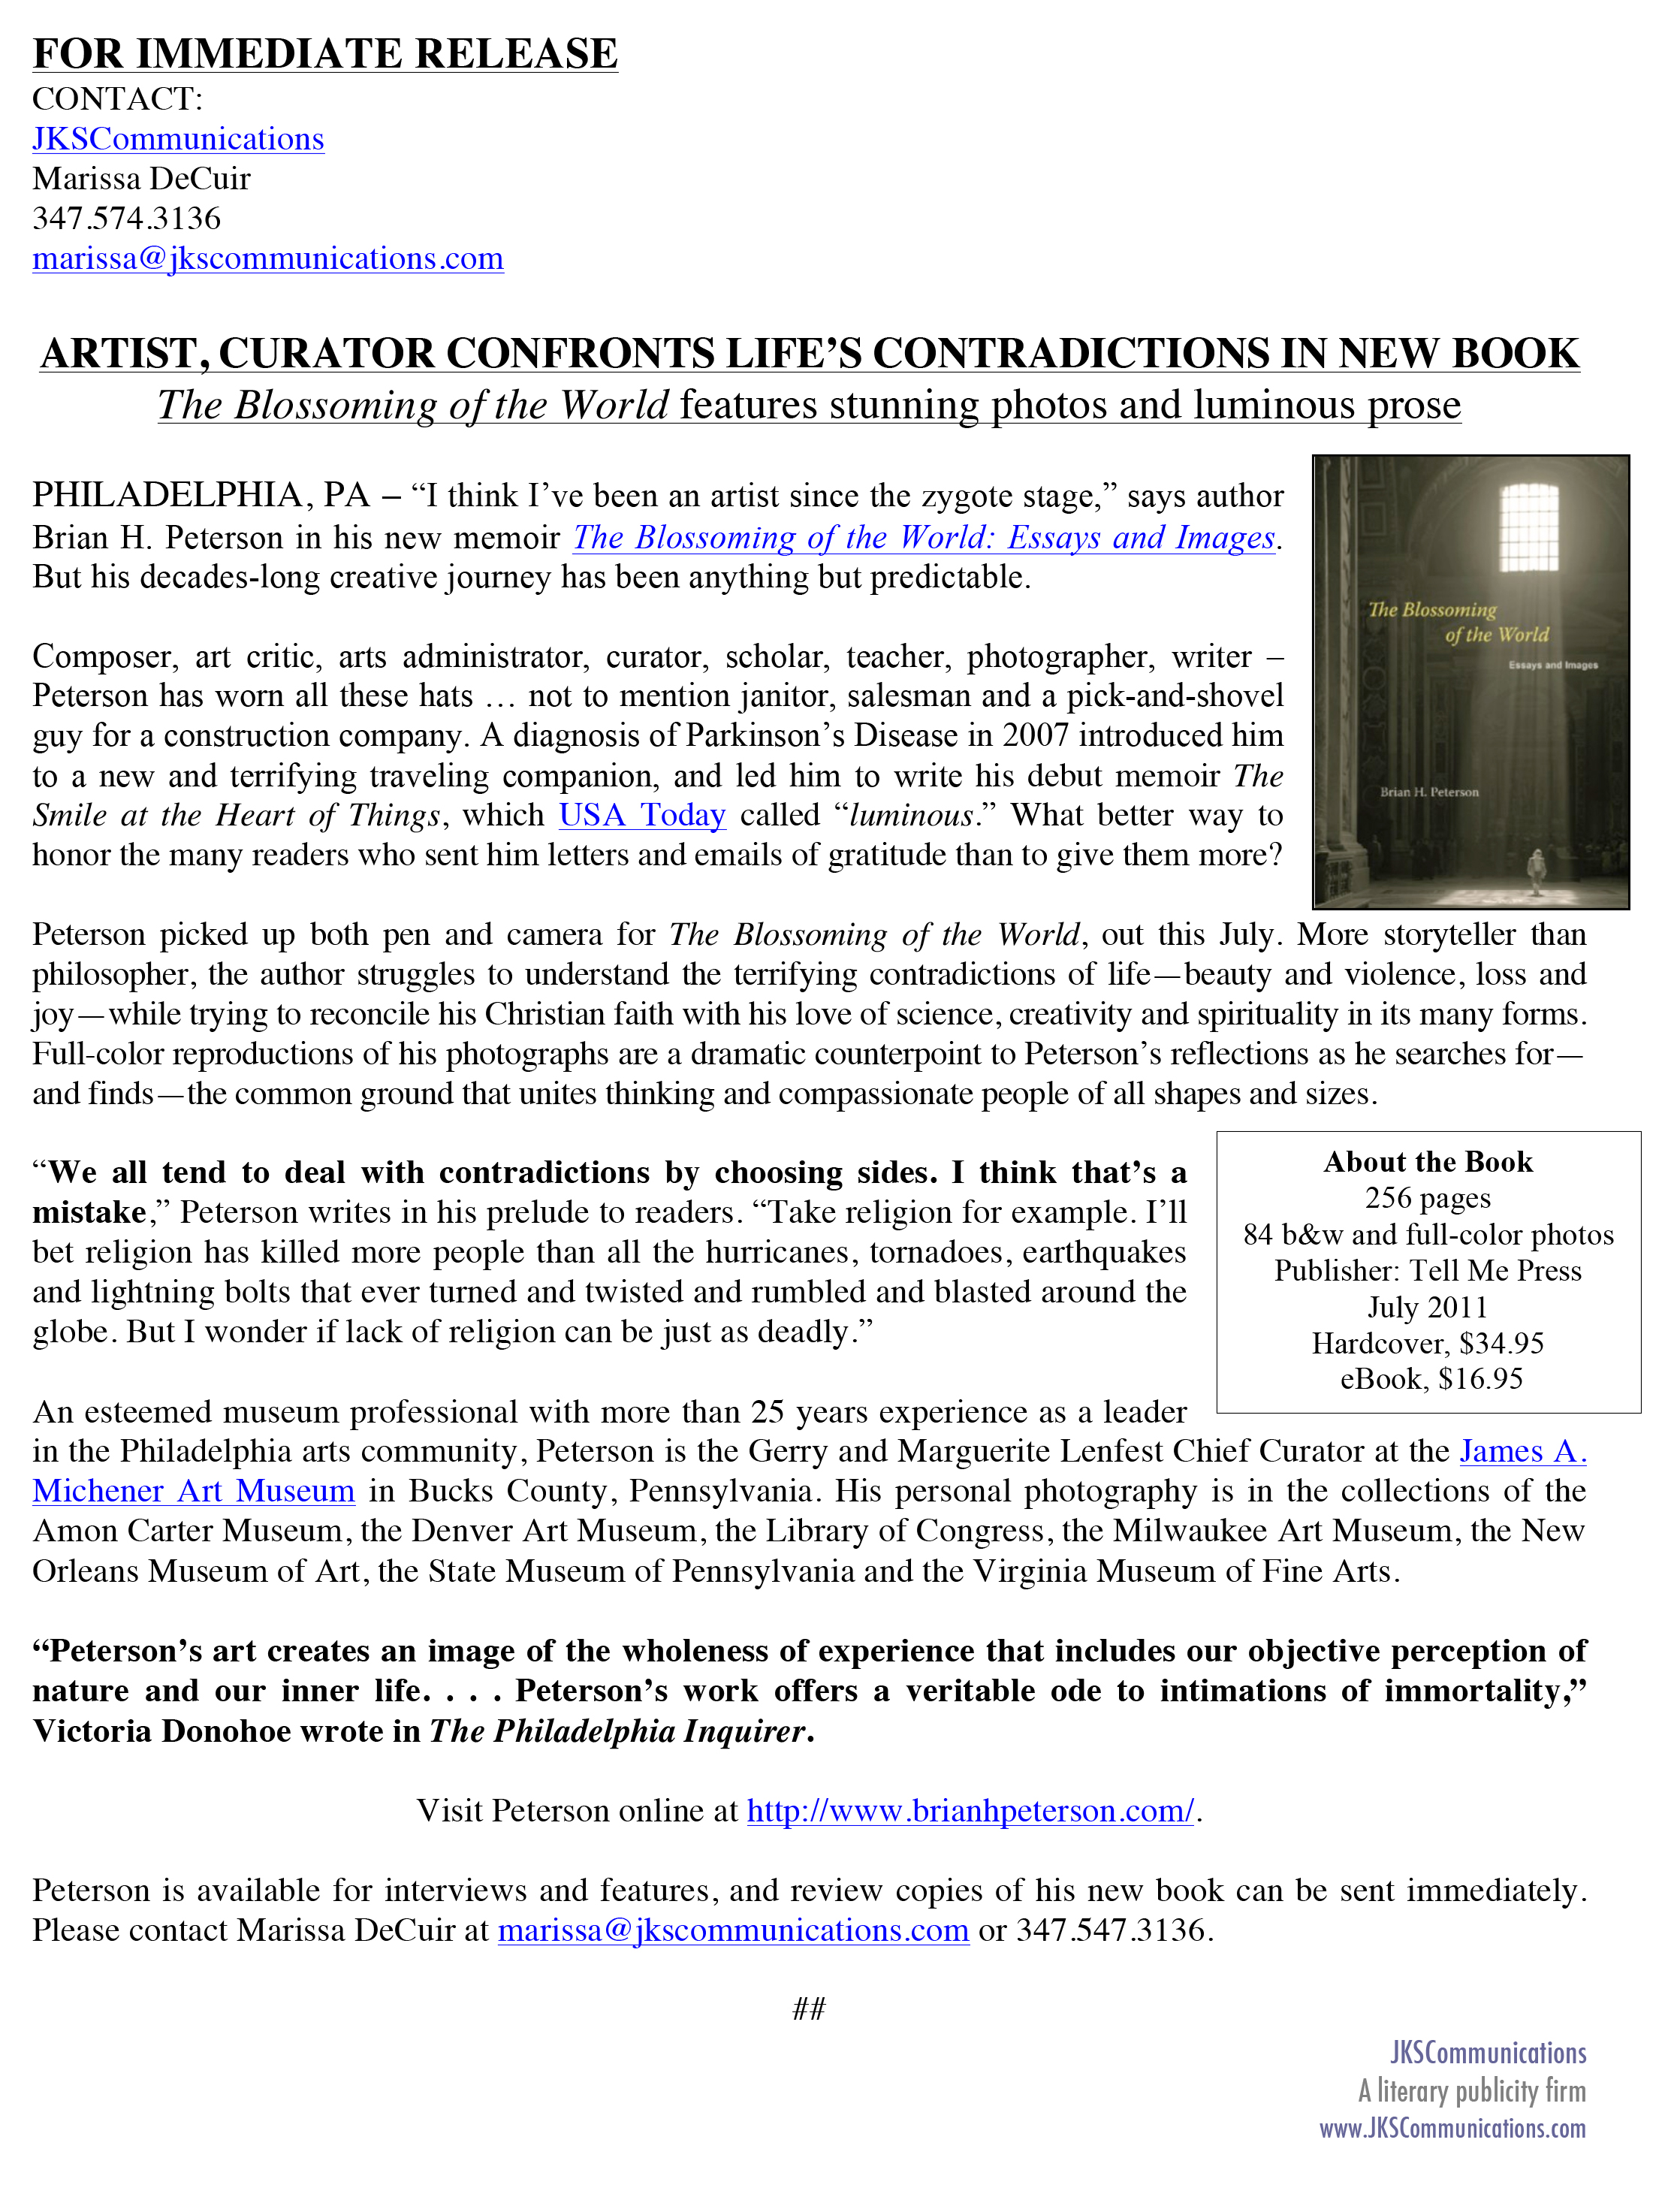 PRESS RELEASE_ARTIST, CURATOR CONFRONTS LIFEíS CONTRADICTIONS IN NEW BOOK-1.jpg